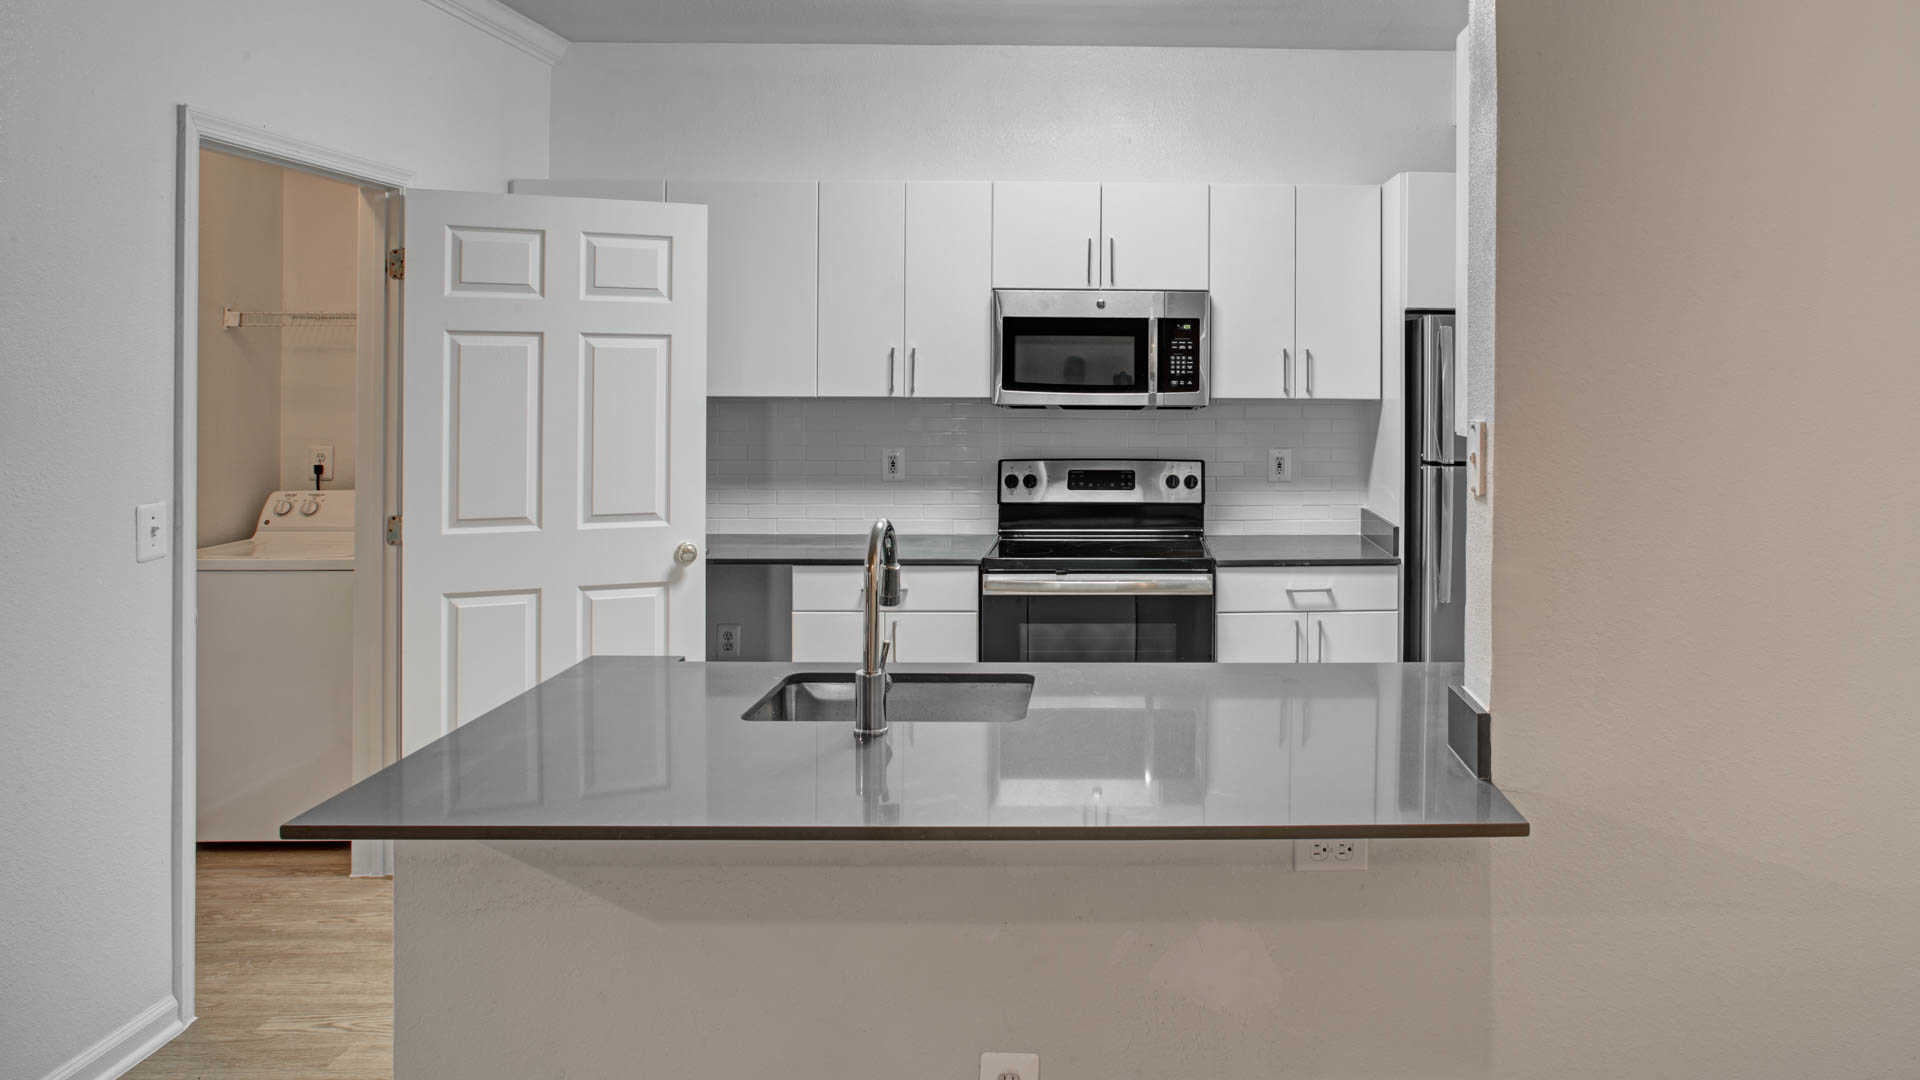 Superb Reserve At Potomac Yard Apartments Reviews In Alexandria   3700 Jefferson  Davis Hwy | EquityApartments.com